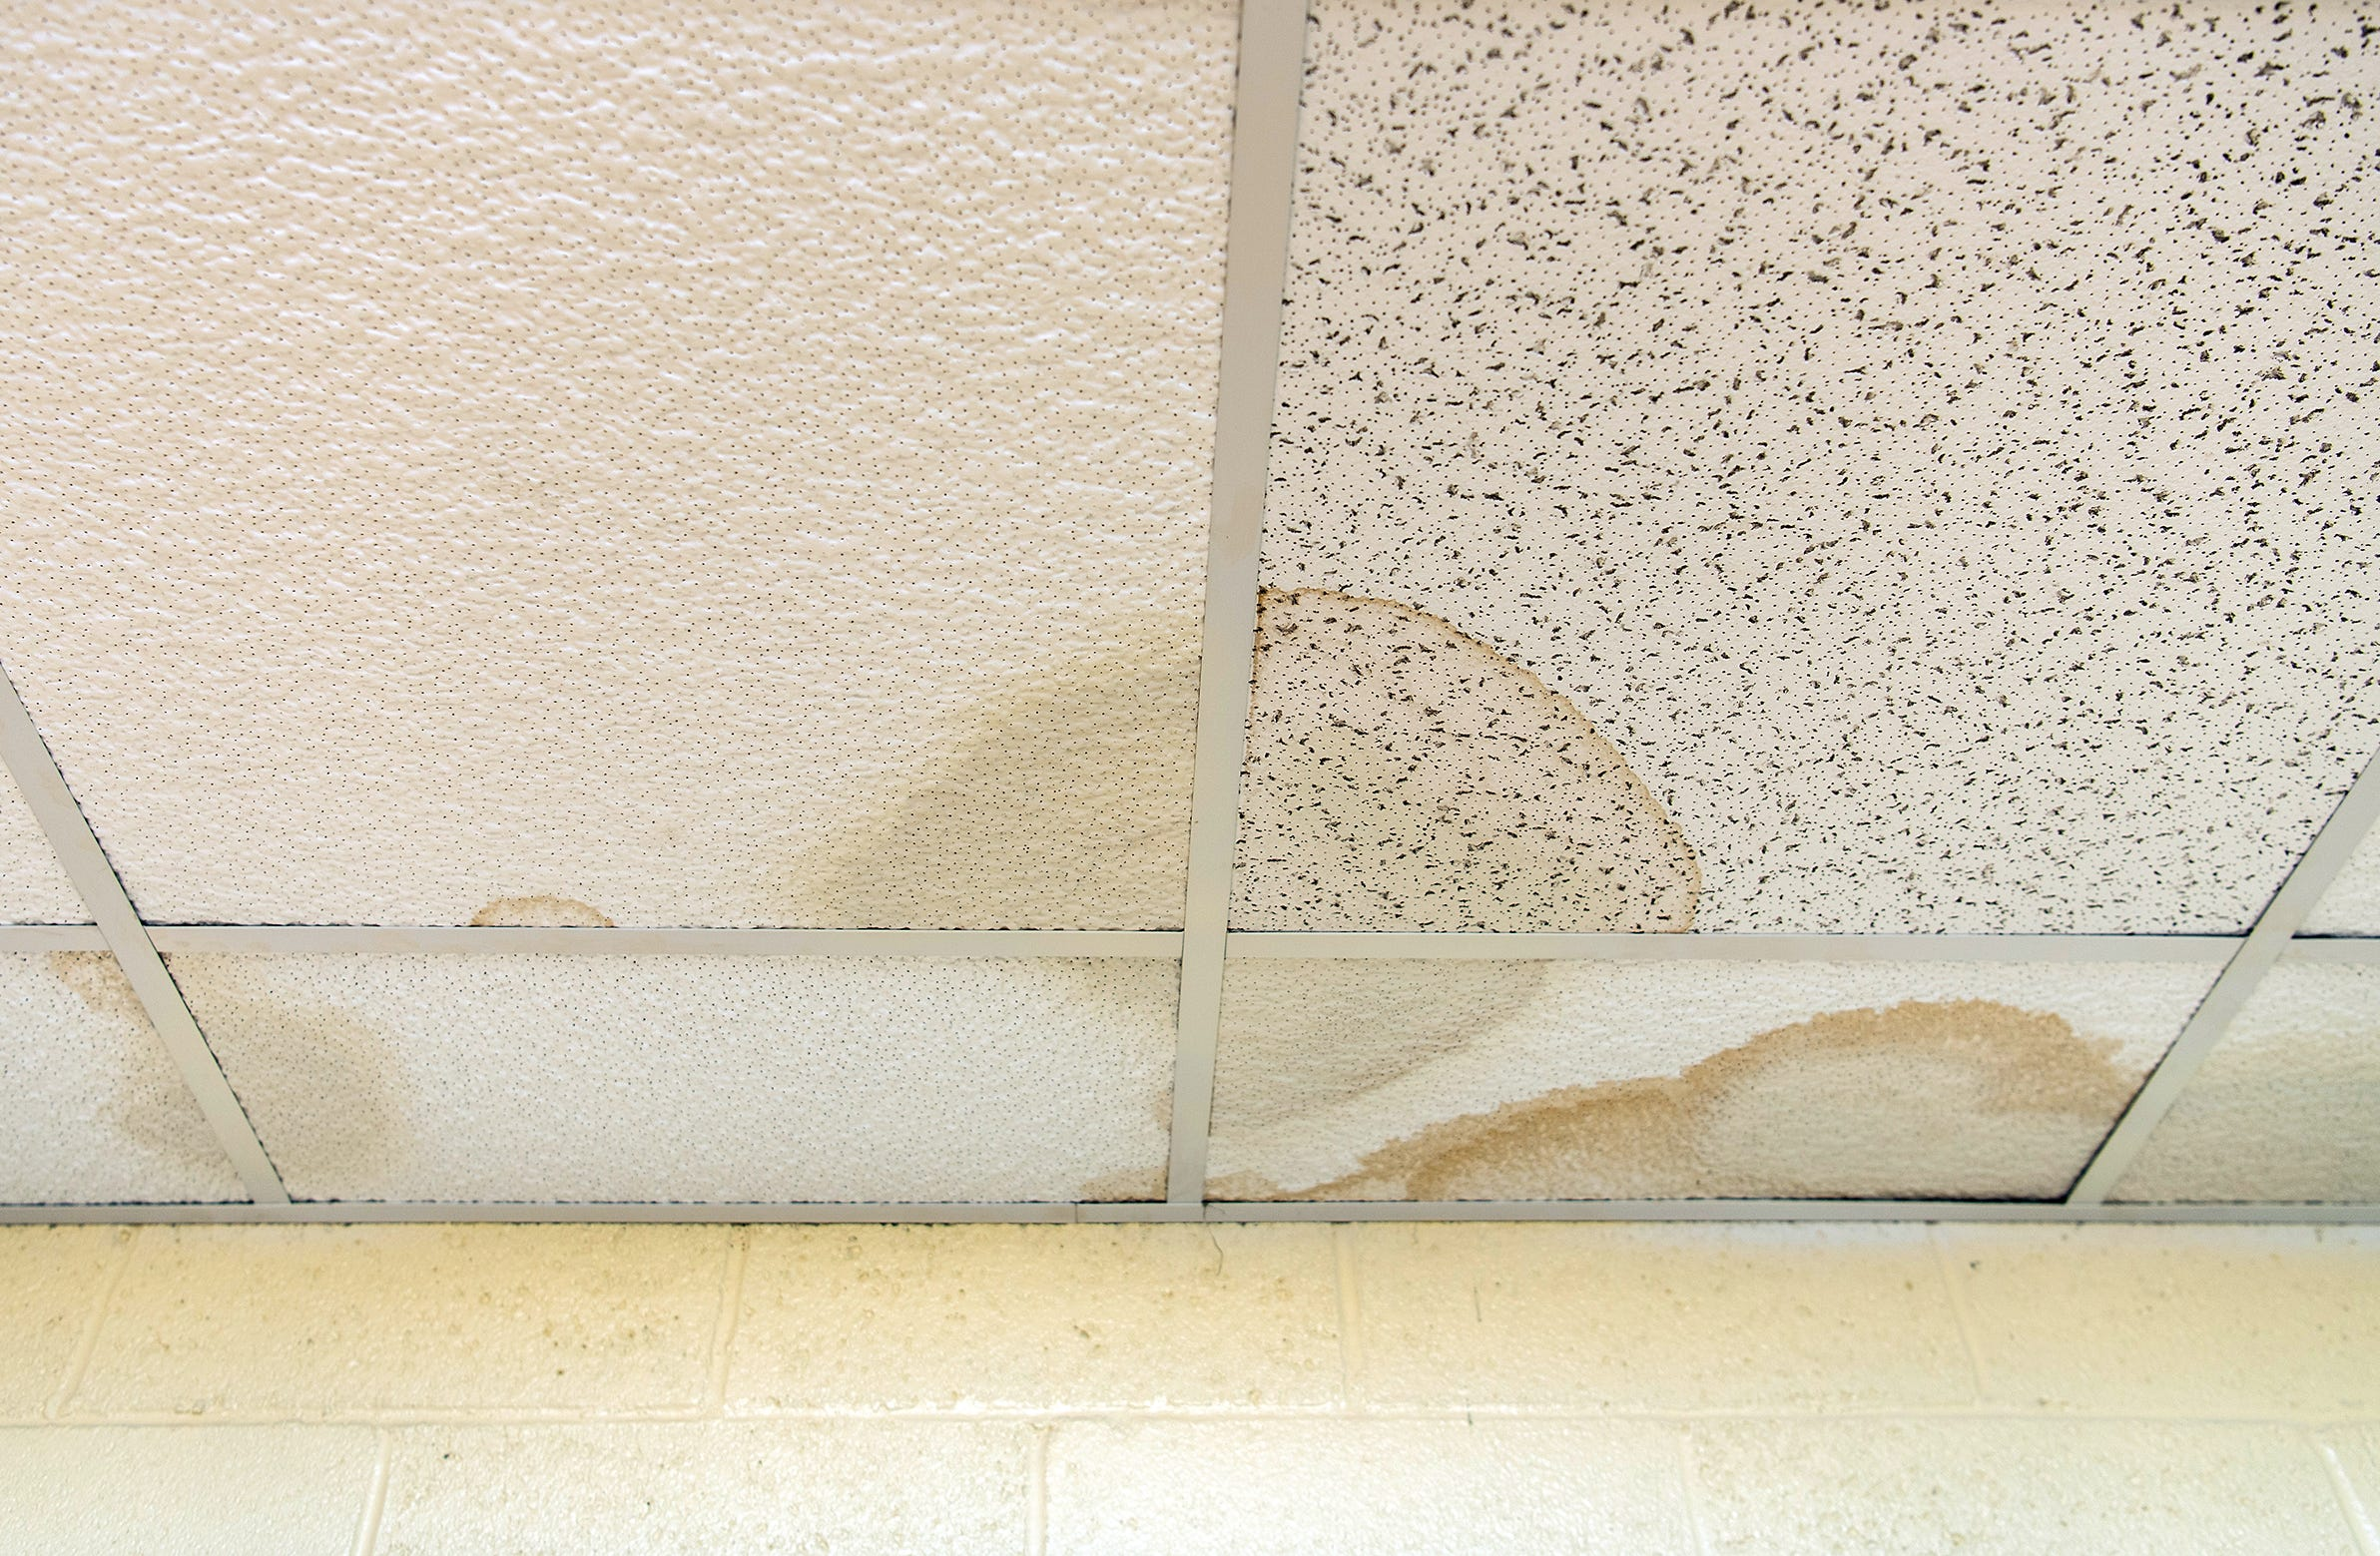 Ceiling tiles damaged by leaks inside the Williams-Sullivan Middle School in Durant, Miss.